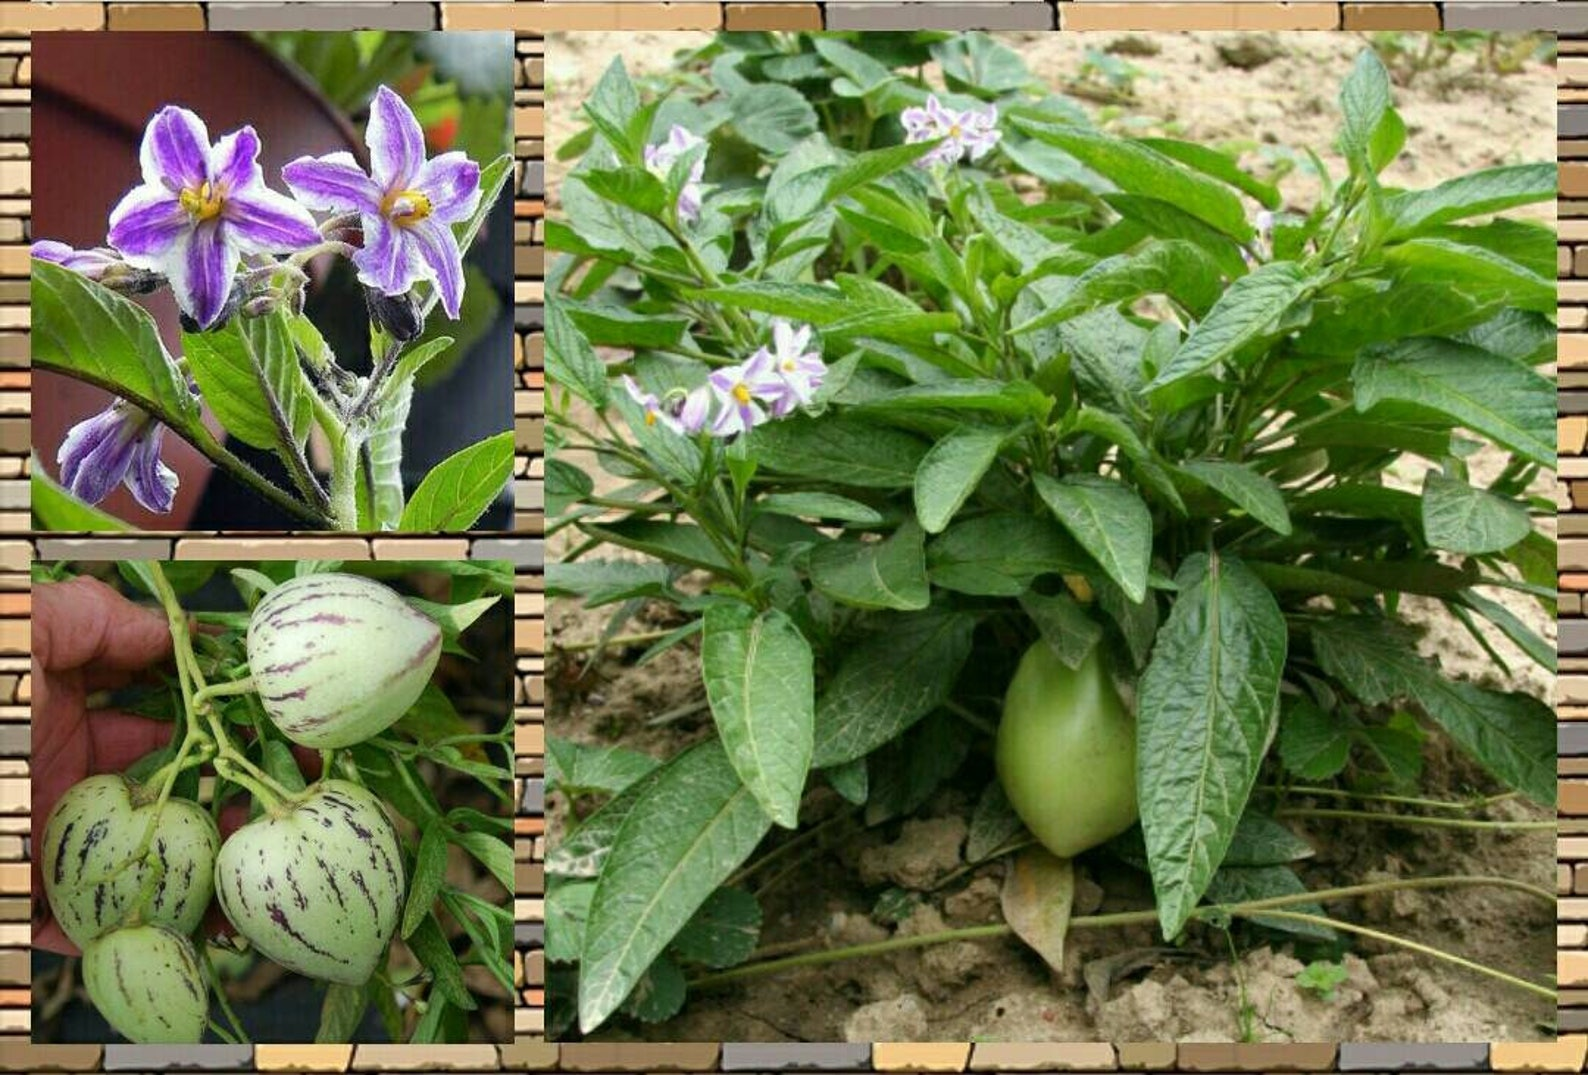 A collage of pepino melon images including flowers, fruits, and a bush growing in the ground.